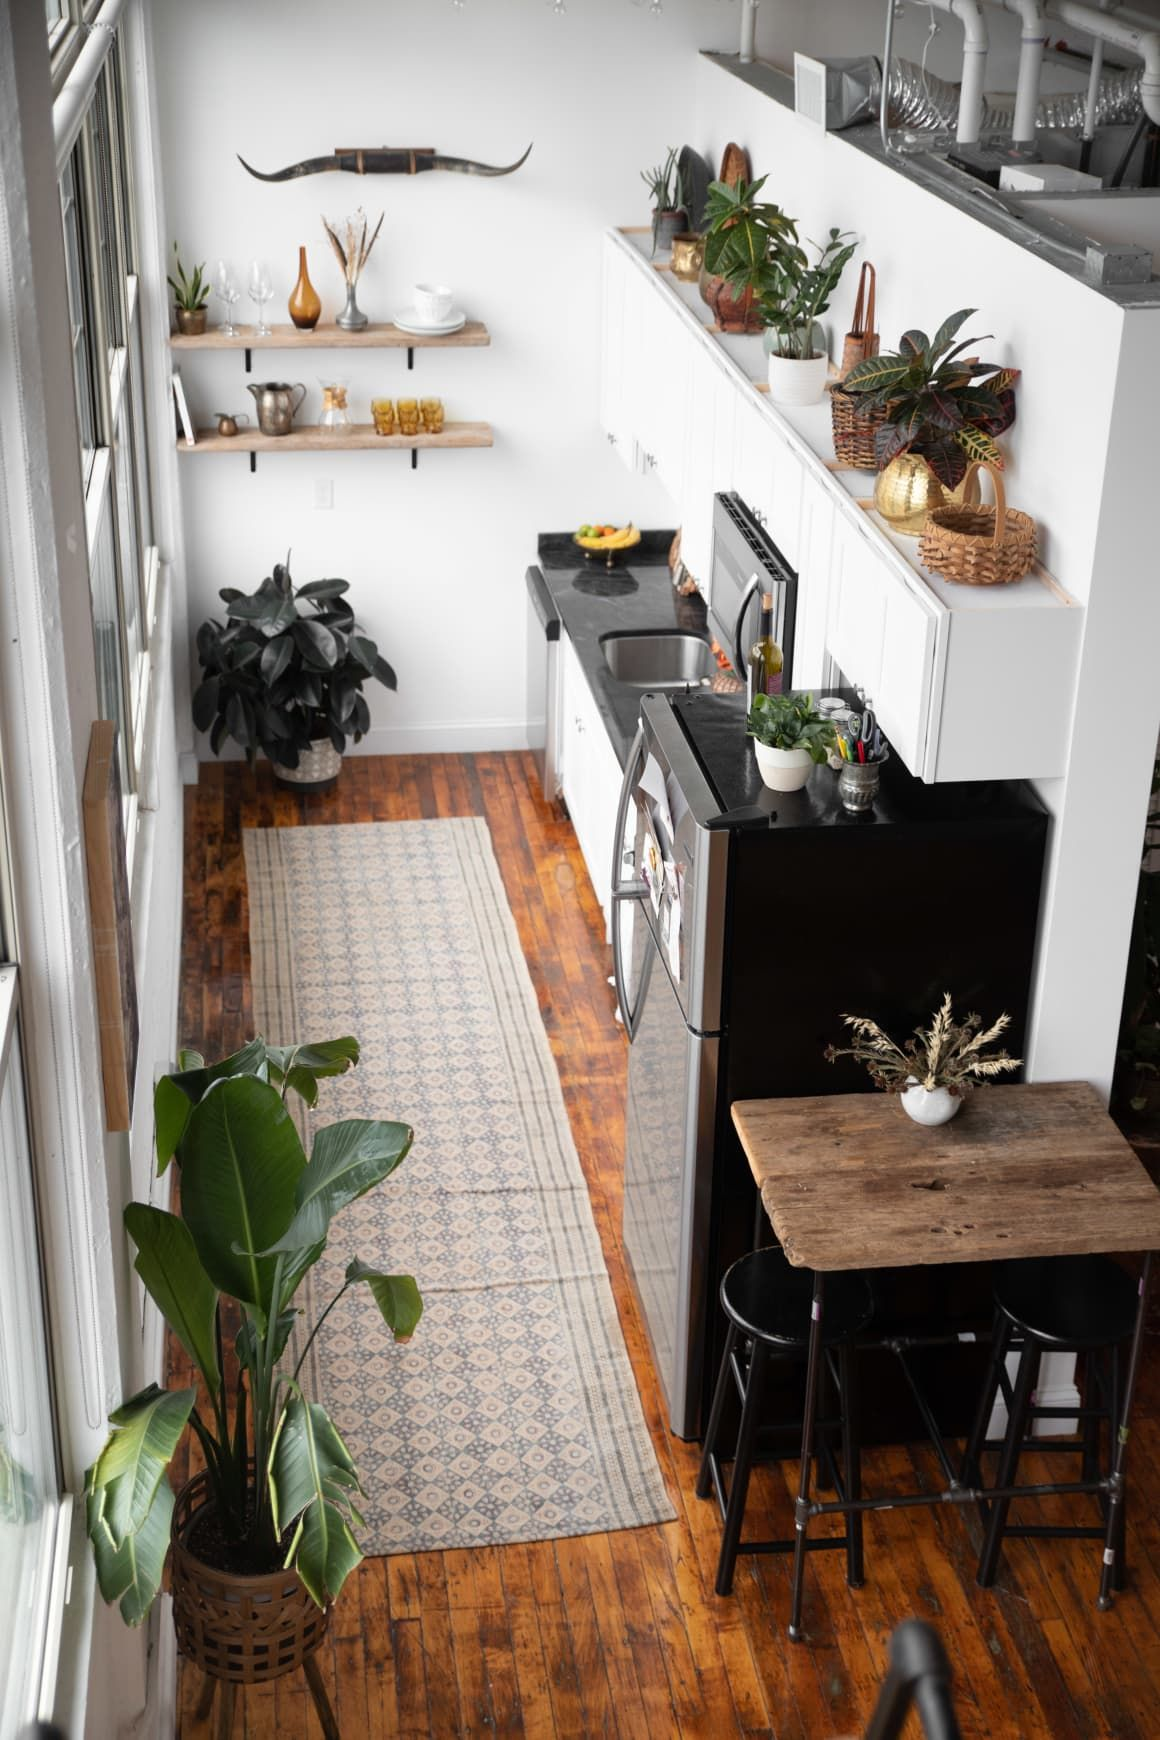 A Scandinavian Inspired Studio Apartment For Two Was Furnished With Found Objects Kitchen Design Small Kitchen Interior Apartment Interior Design